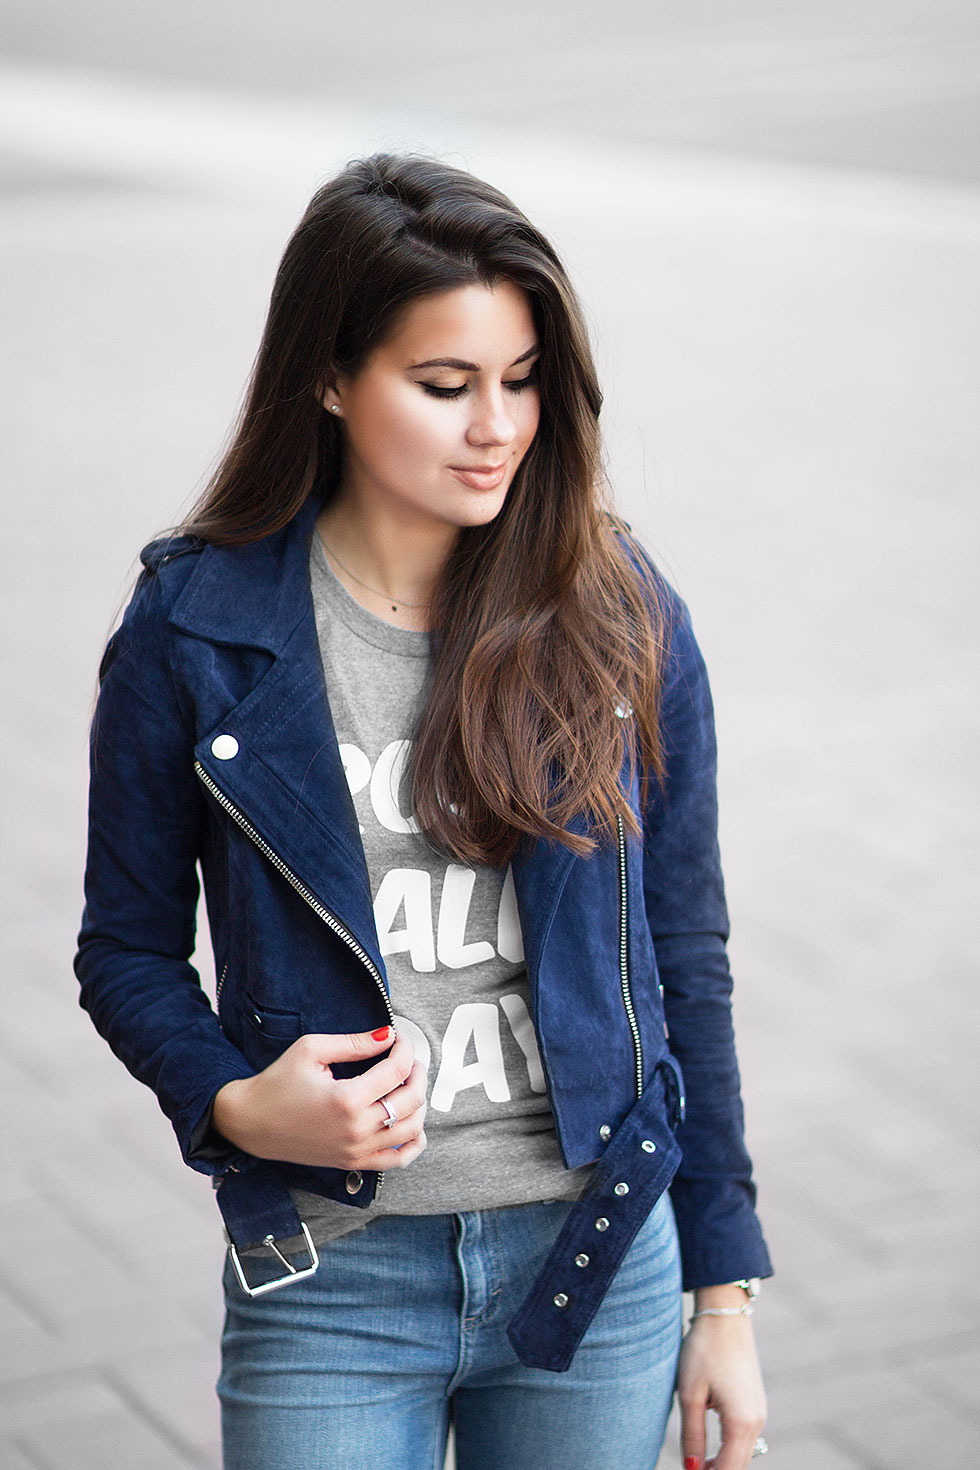 Dress up a Graphic T-shirt with a Suede Moto Jacket --- BLANK NYC Royal Blue Suede Moto Jacket and Dittos Distressed Ankle Skinny Jeans